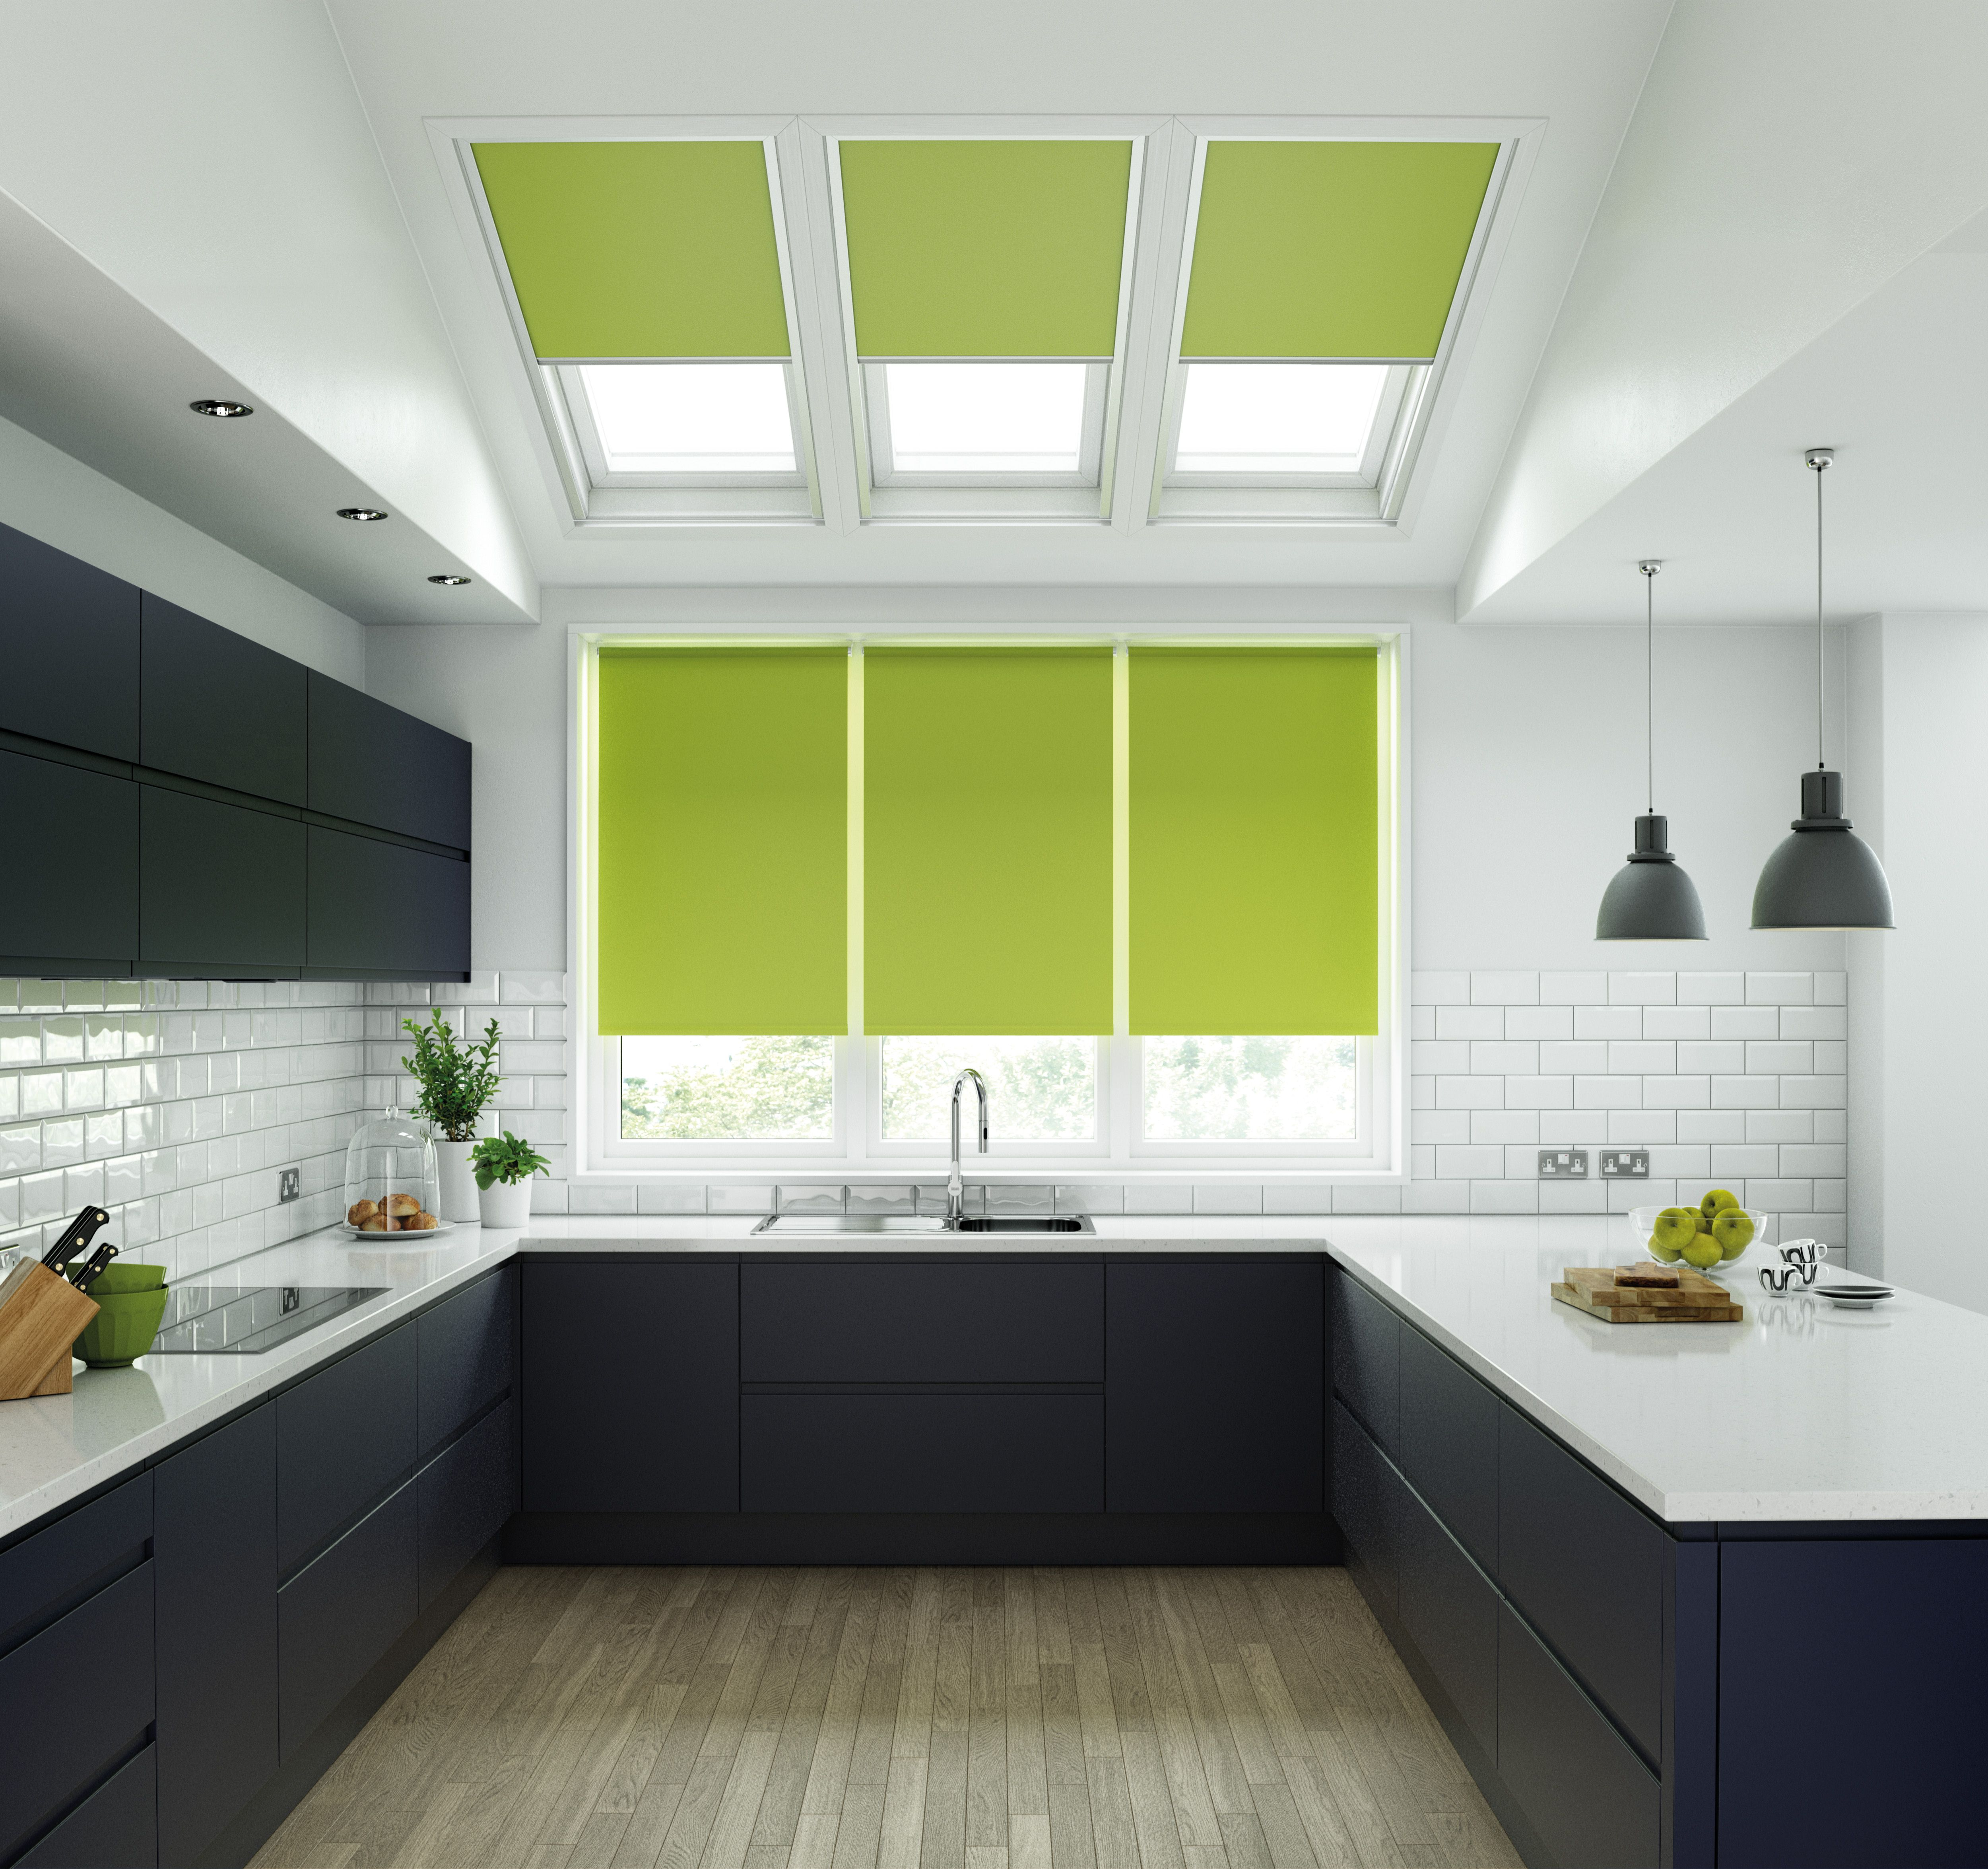 Lime Green Roller Blinds In Unilux Fabric Fitted To